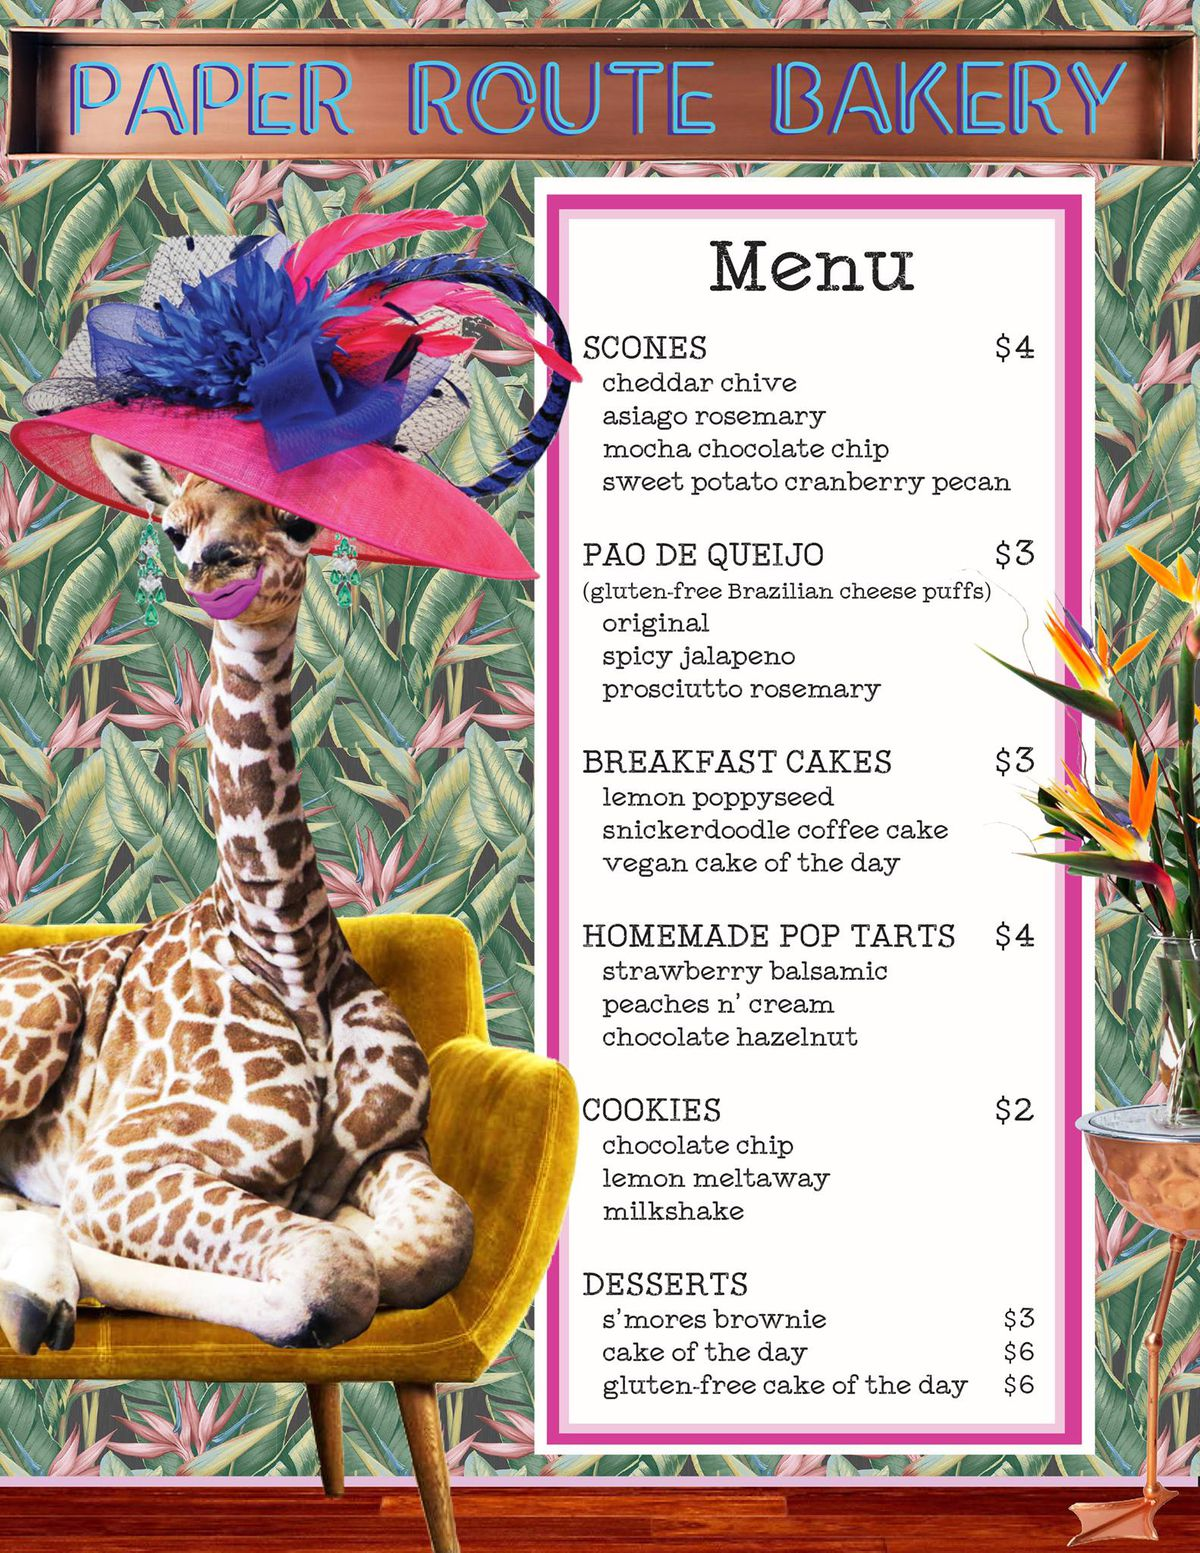 Paper Route Bakery's working menu